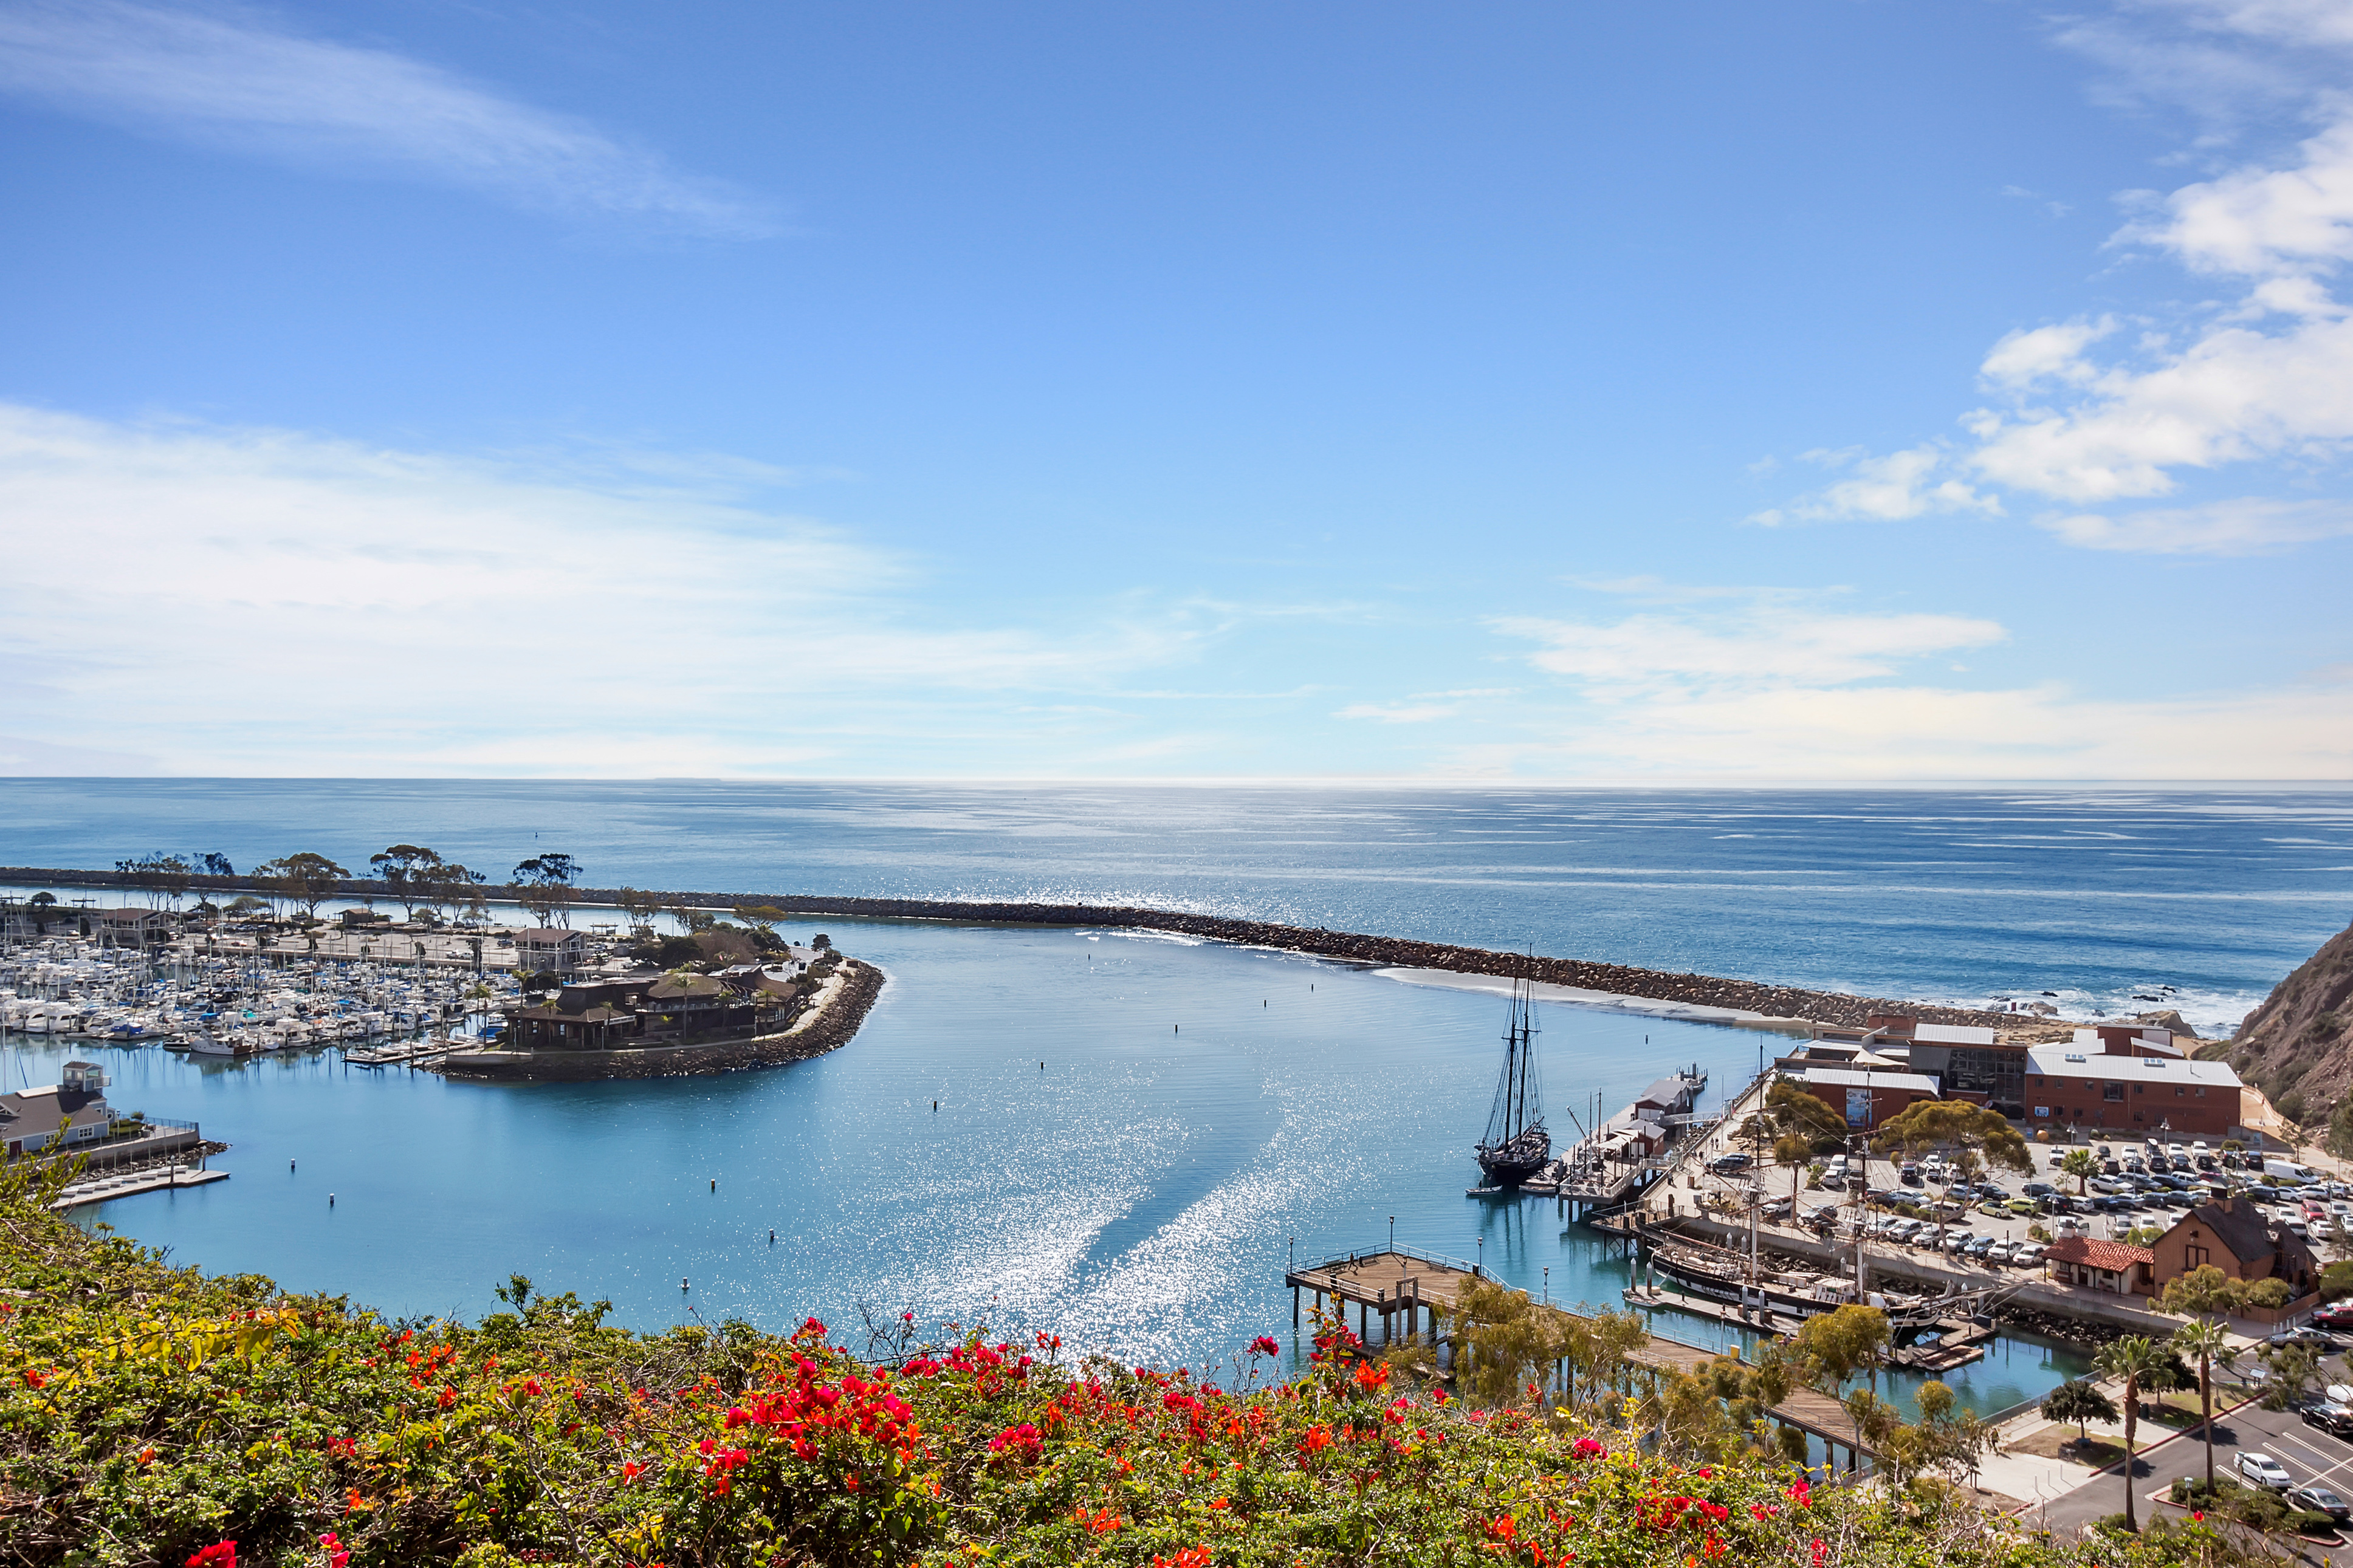 Dana Point Harbor 6